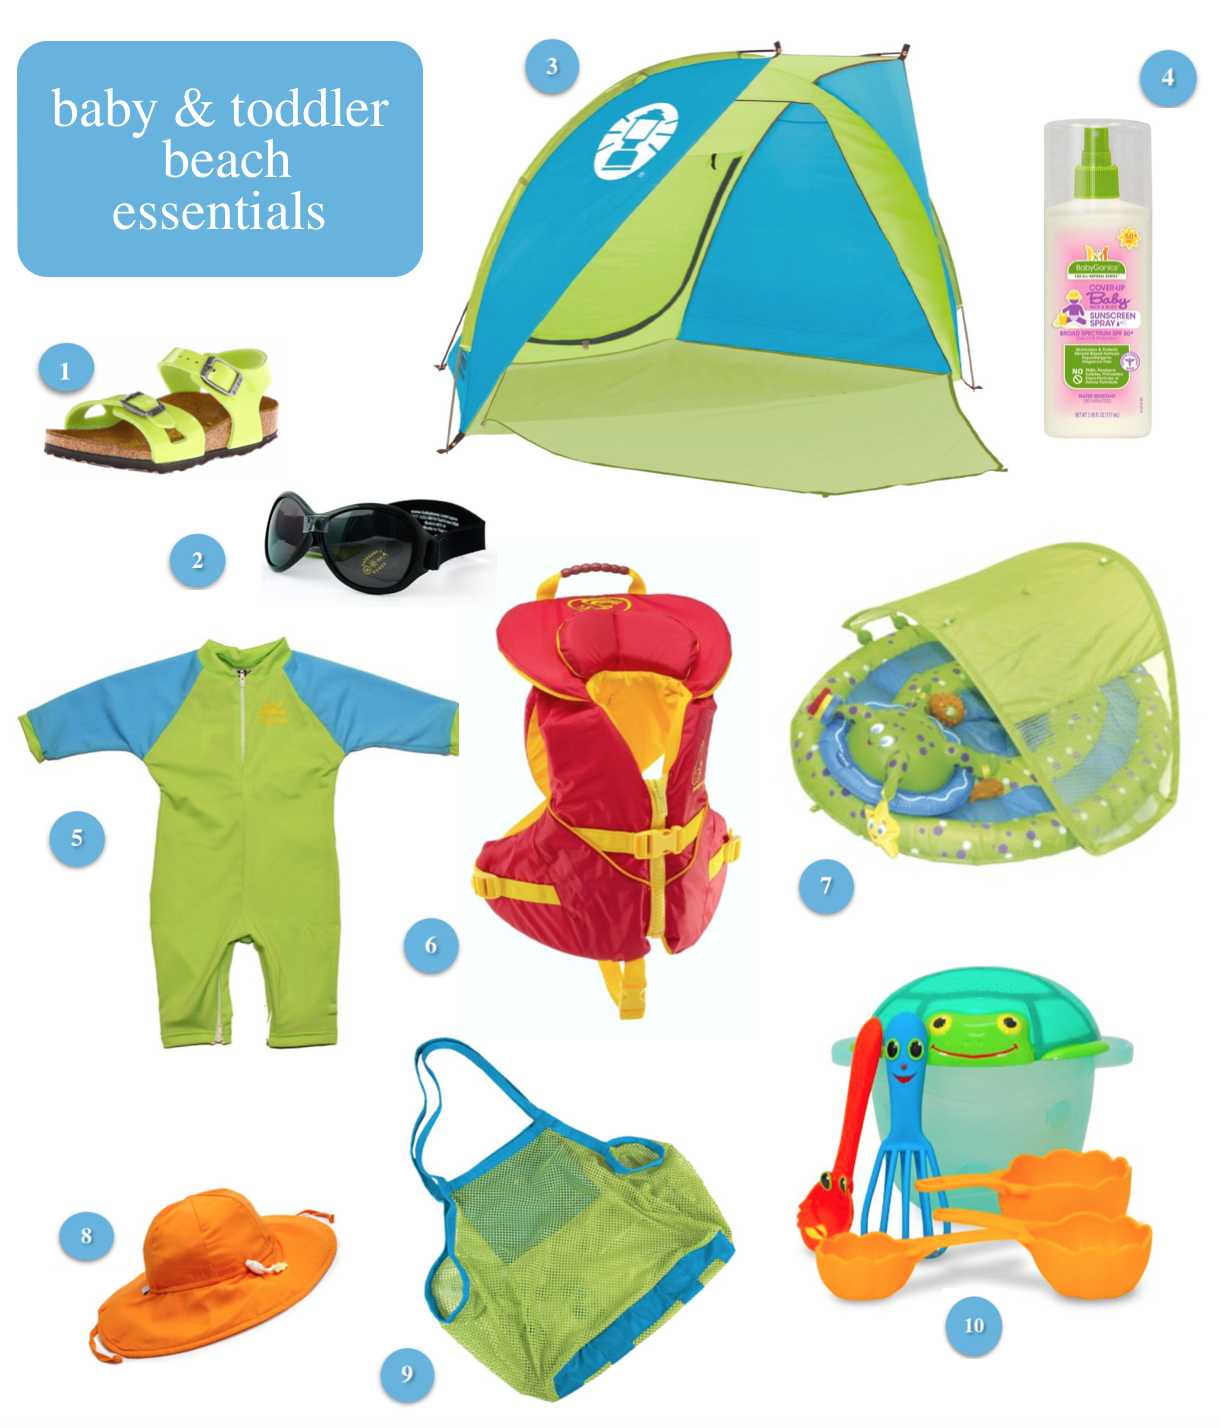 Taking your baby or toddler on a trip to the beach check out this